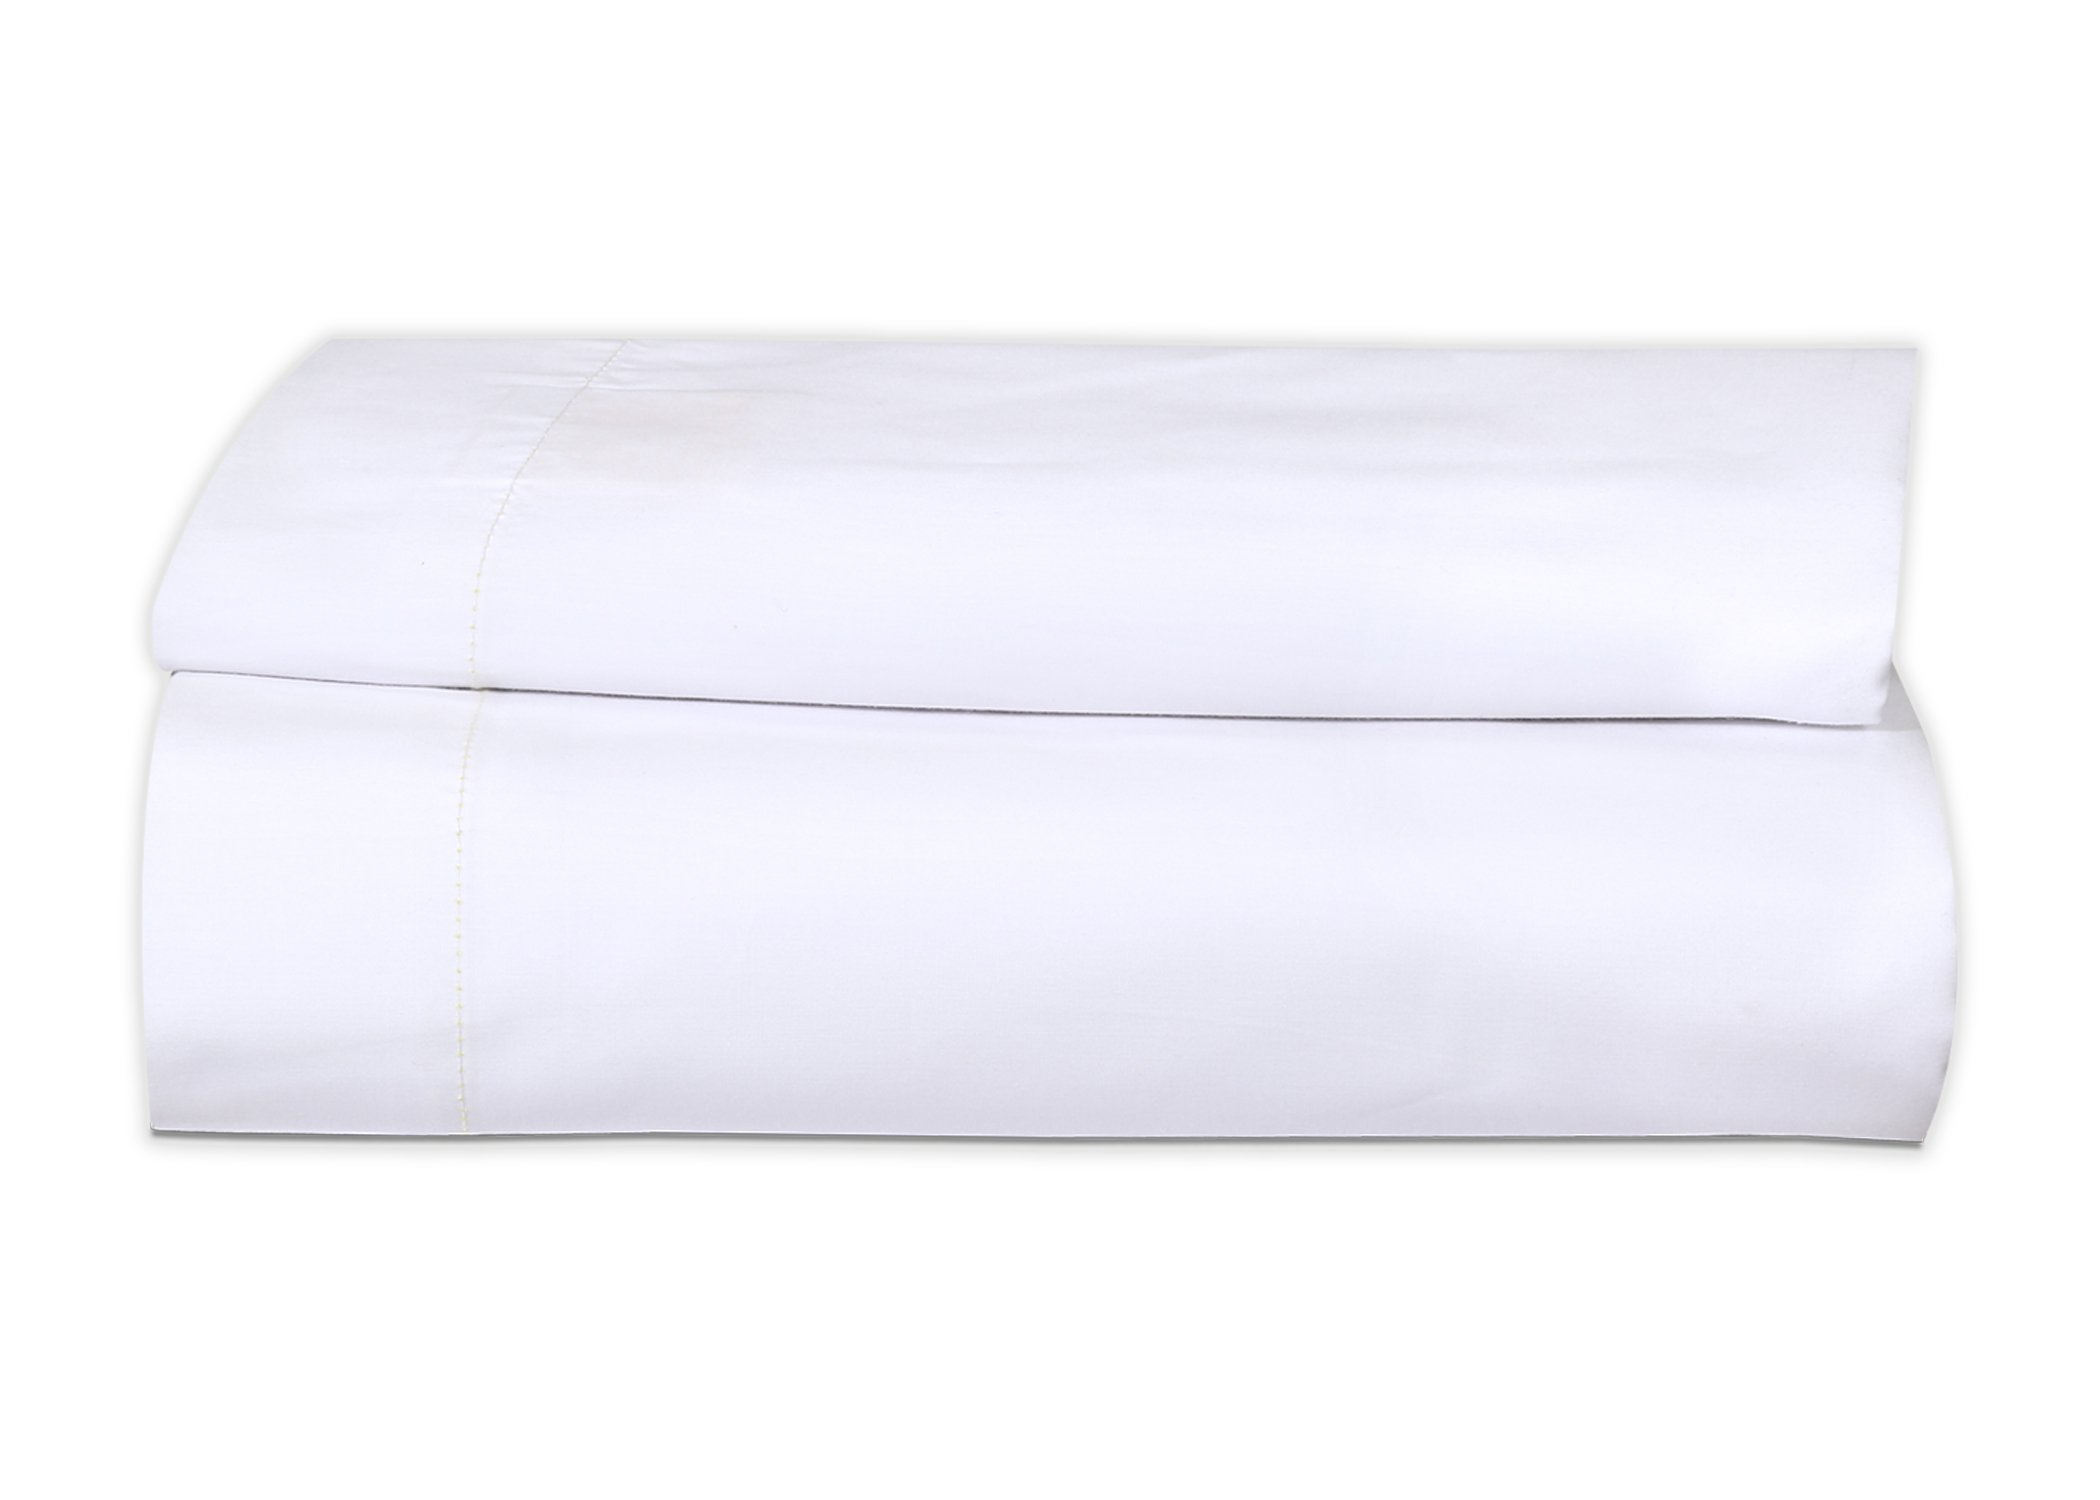 Gold Textiles 2 Pack Queen Flat Sheet (90''x110'') Bright White T-200 Percale Hotel Linen Breathable,Soft and Comfortable - Wrinkle, Fade Stain Resistant (2, Queen)